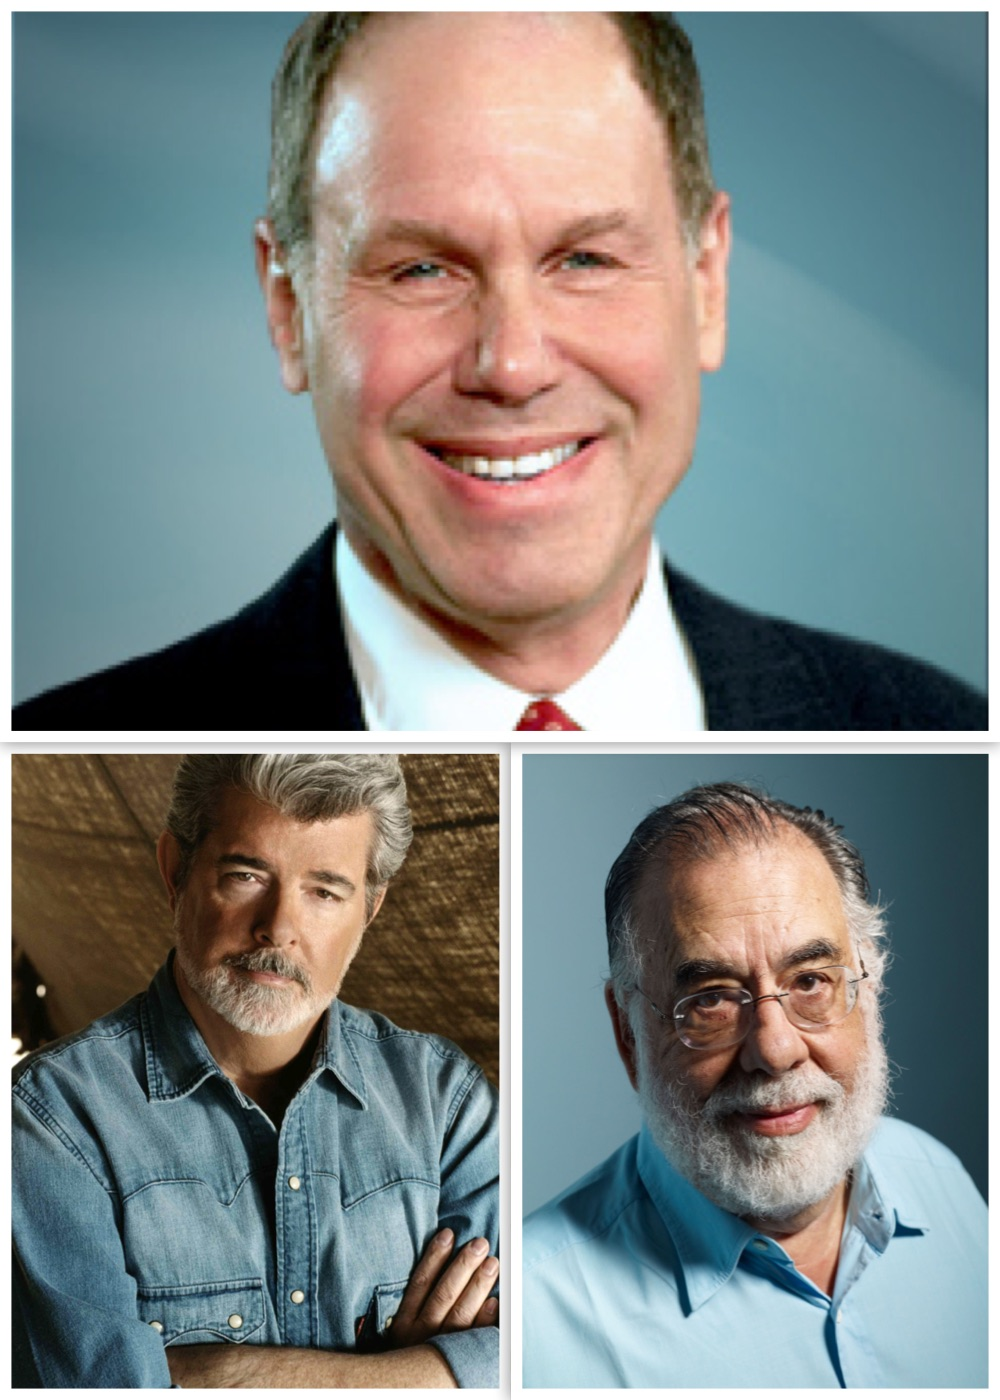 Michael Eisner, George Lucas and Francis Ford Coppola